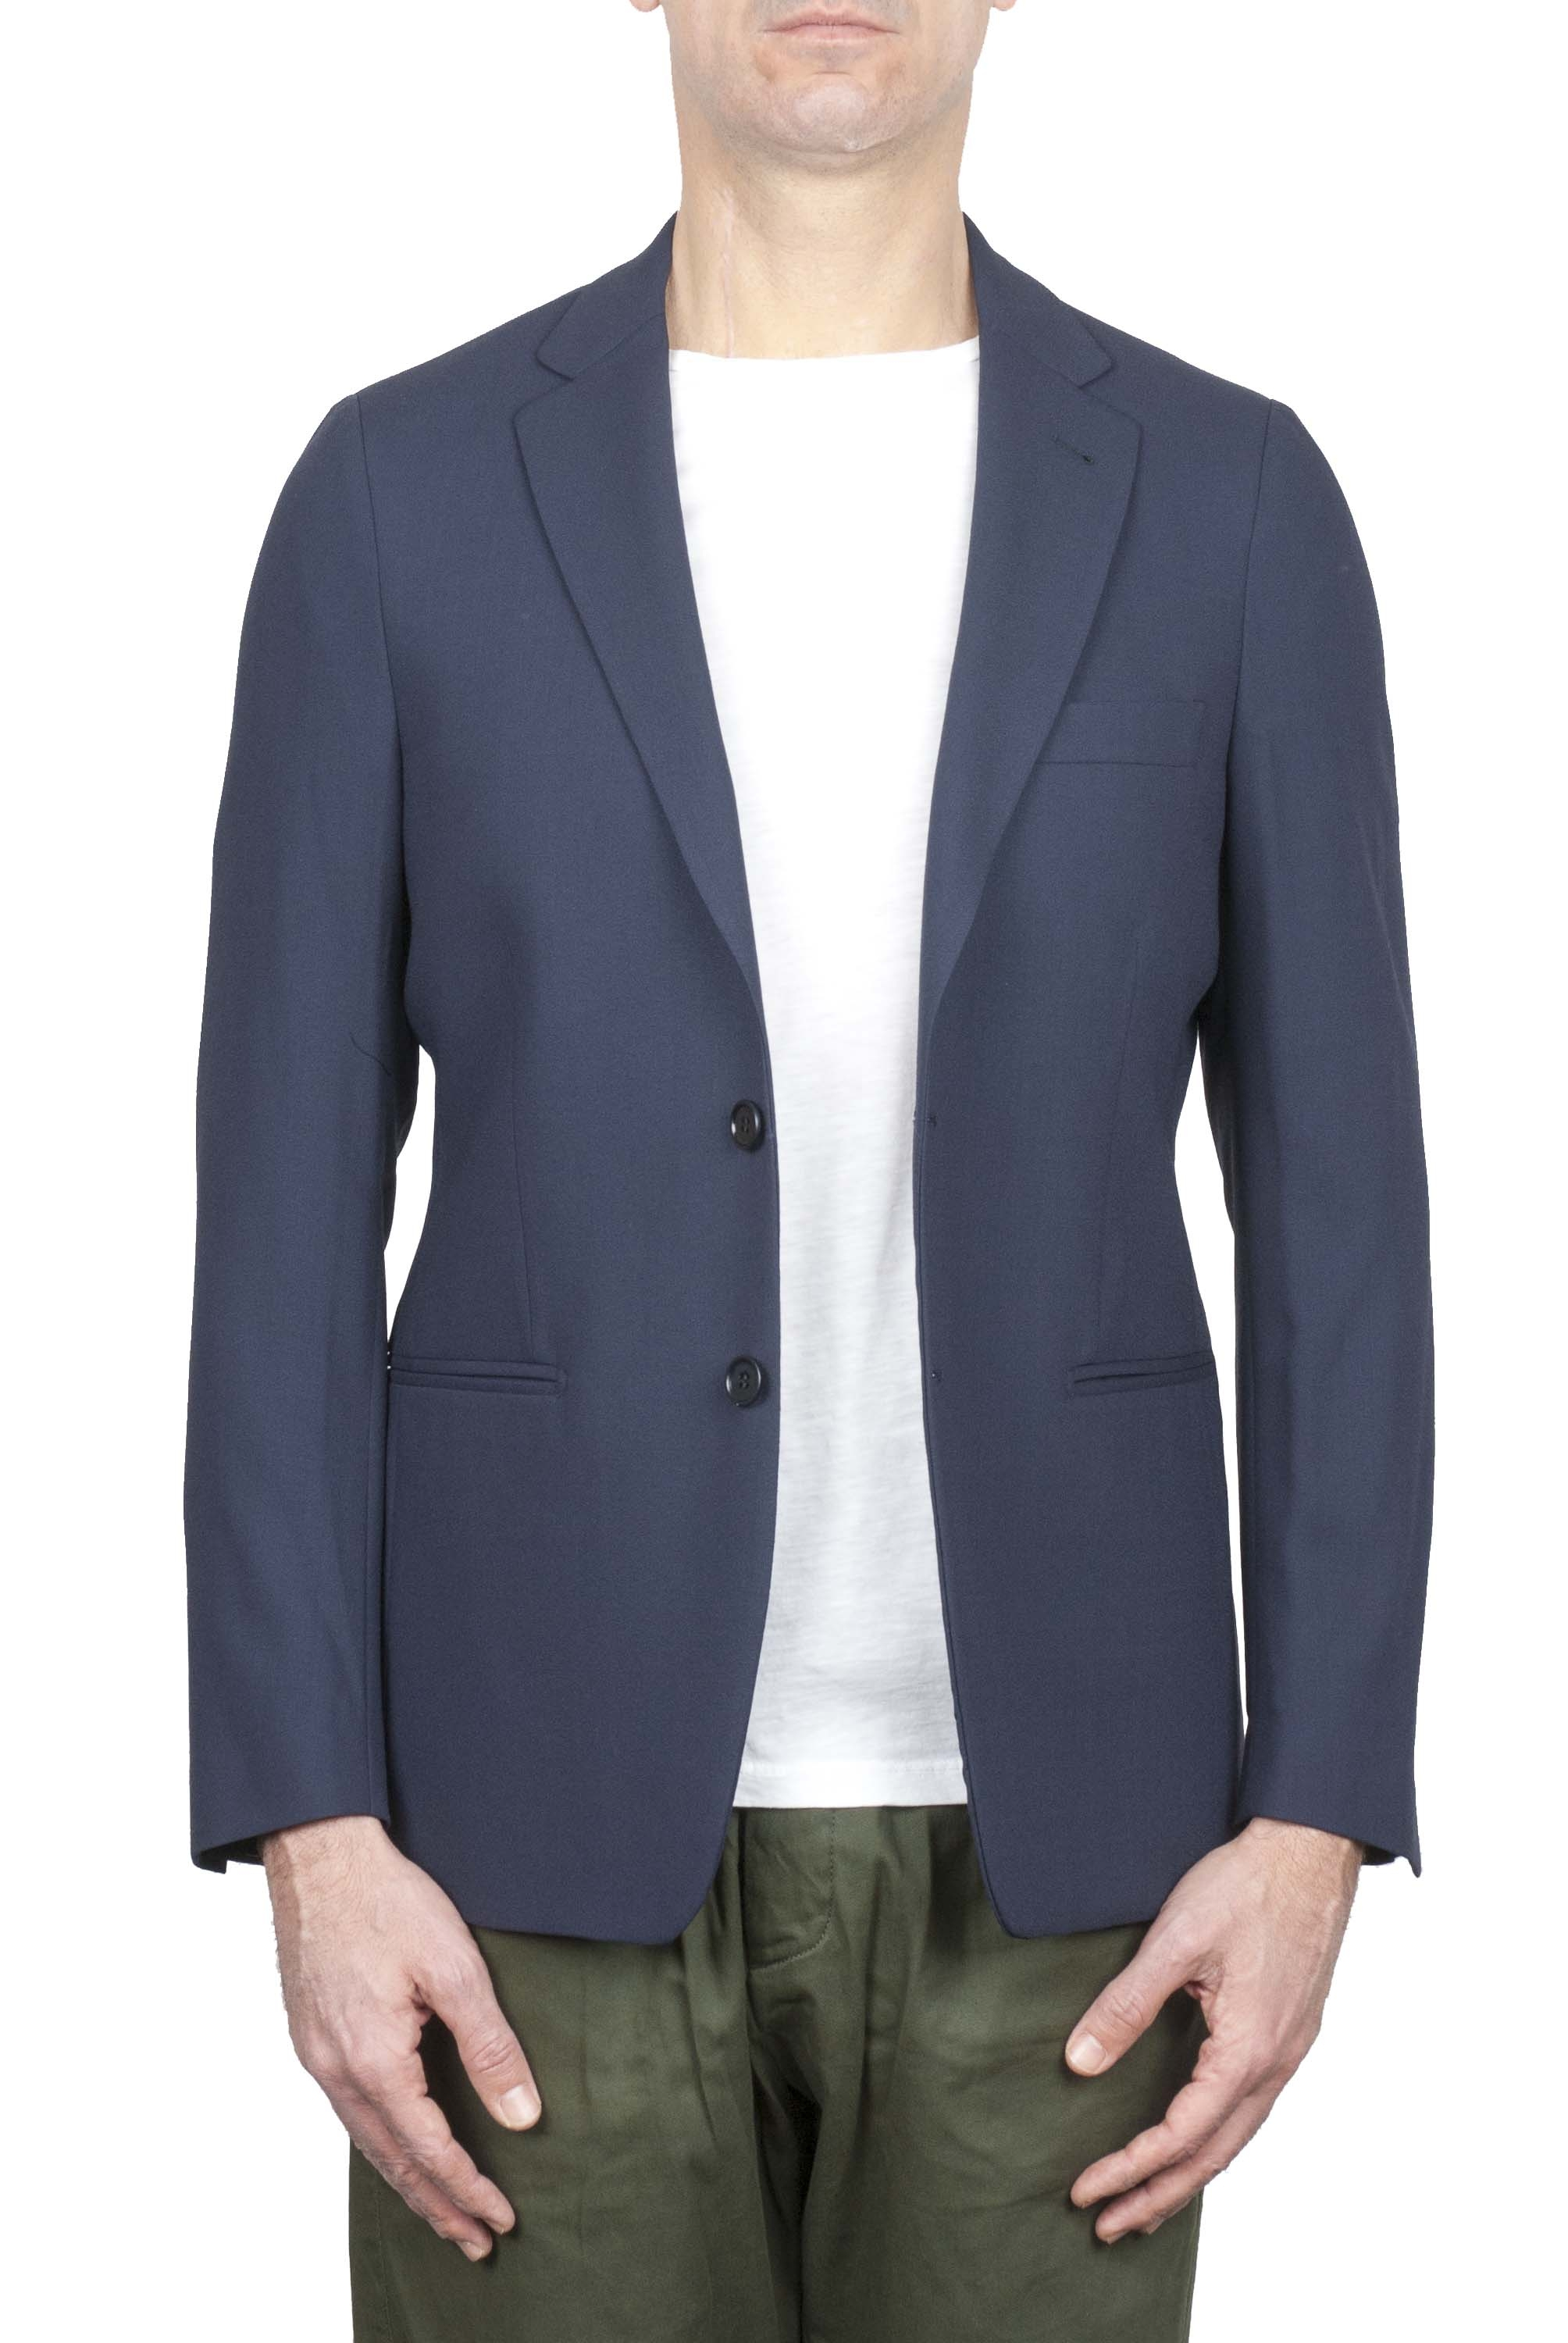 SBU 01173 Single breasted unstructured blazer 01